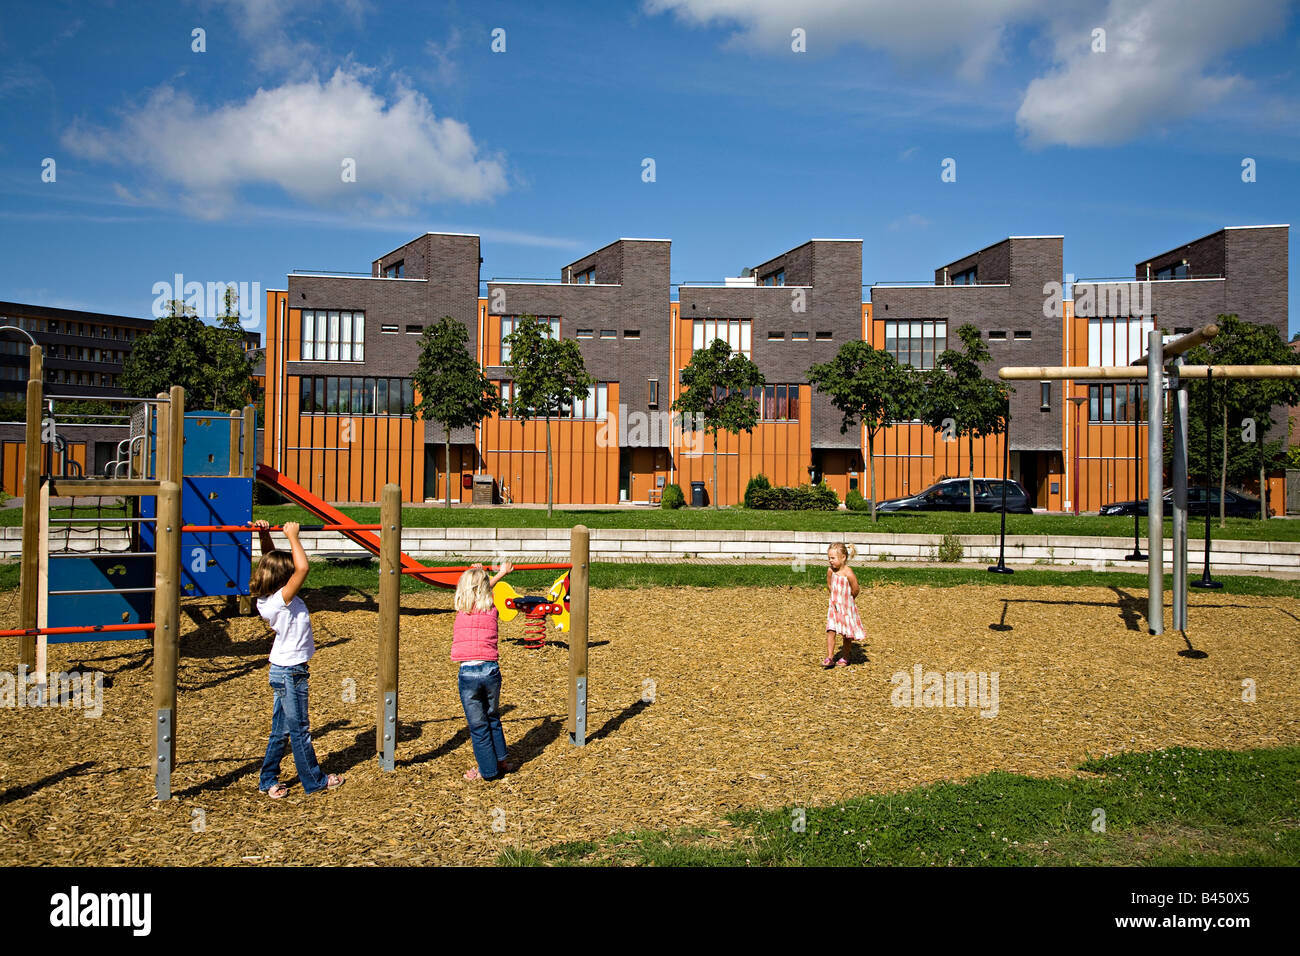 Modern Architecture Netherlands children in playground with modern architecture buildings and wood